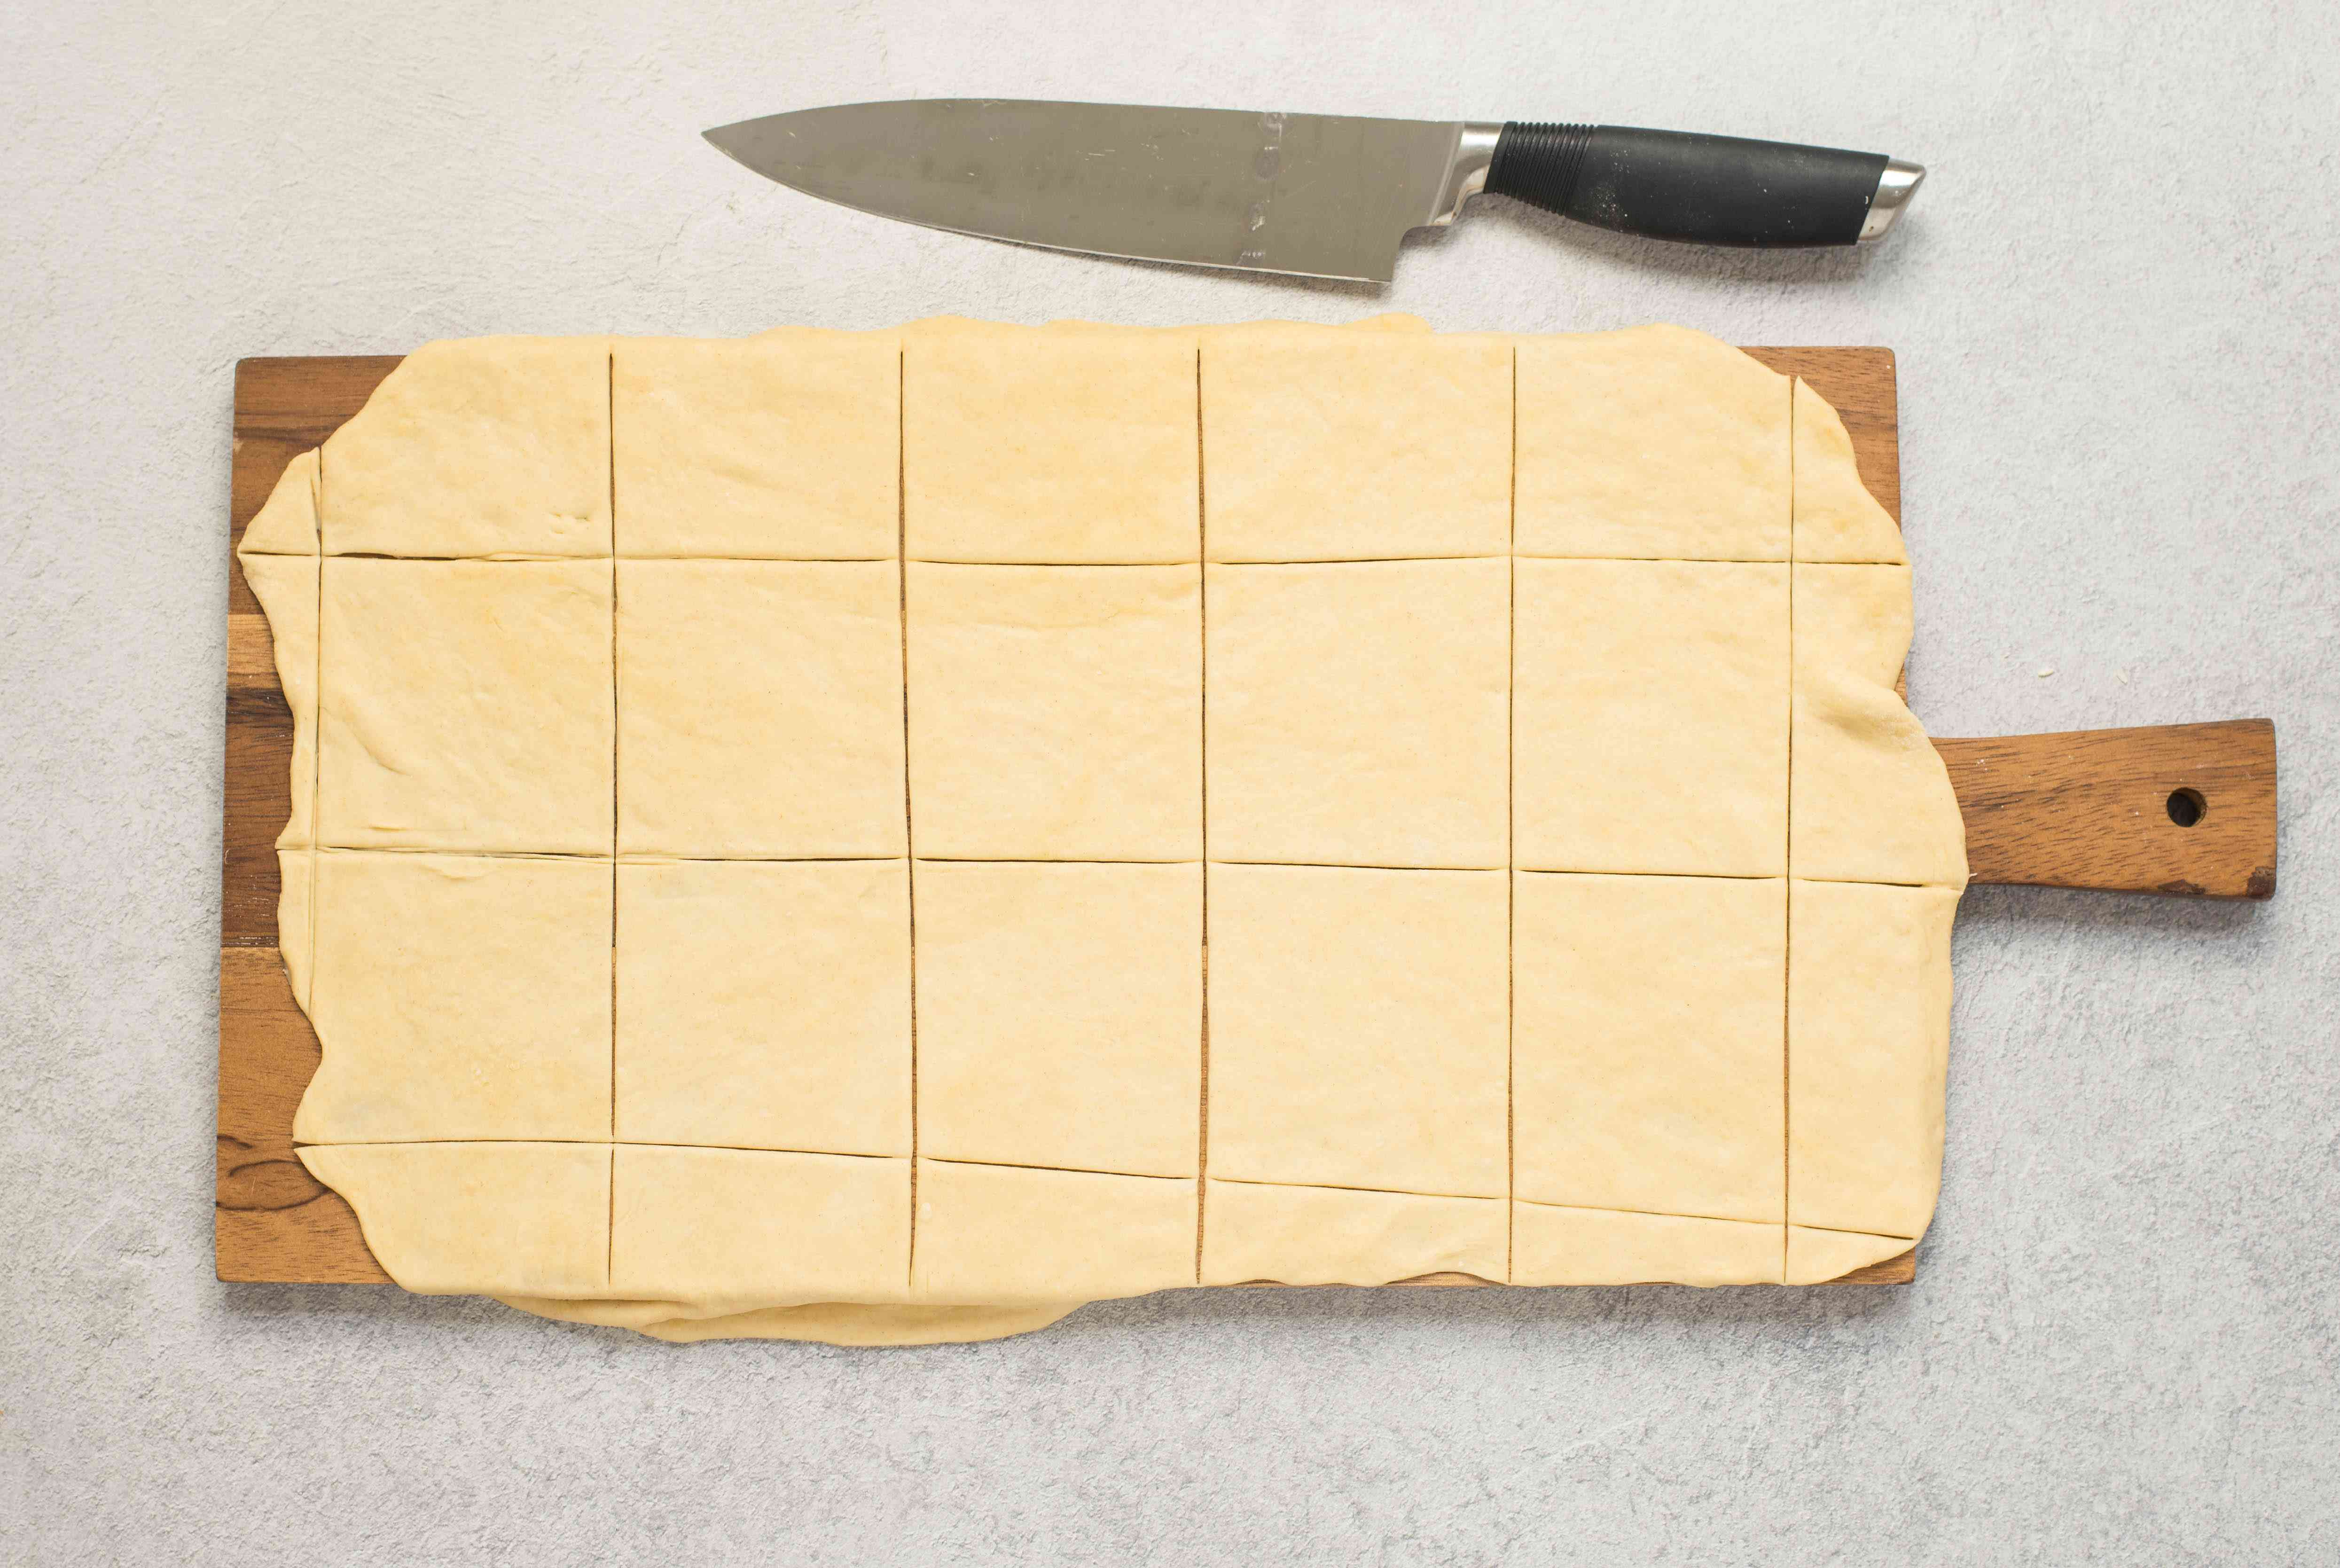 Dough is cut into 3 1/2-inch squares